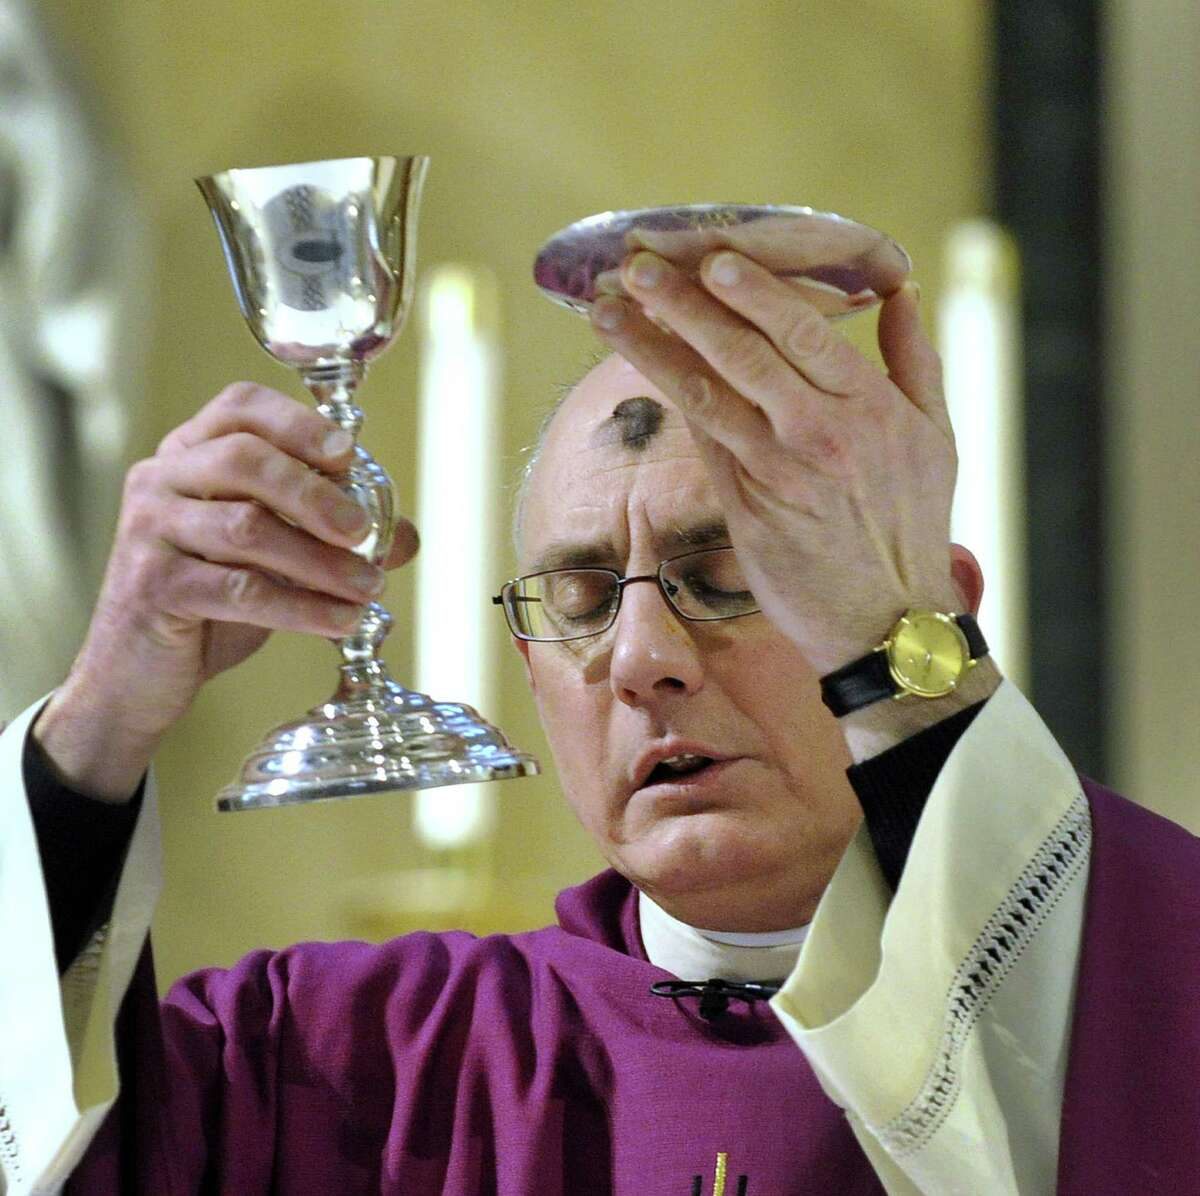 Father Gregg Mecca, pastor of St. Peter Church in Danbury, blesses the communion elements at a morning Ash Wednesday Mass, Feb. 14, 2018.